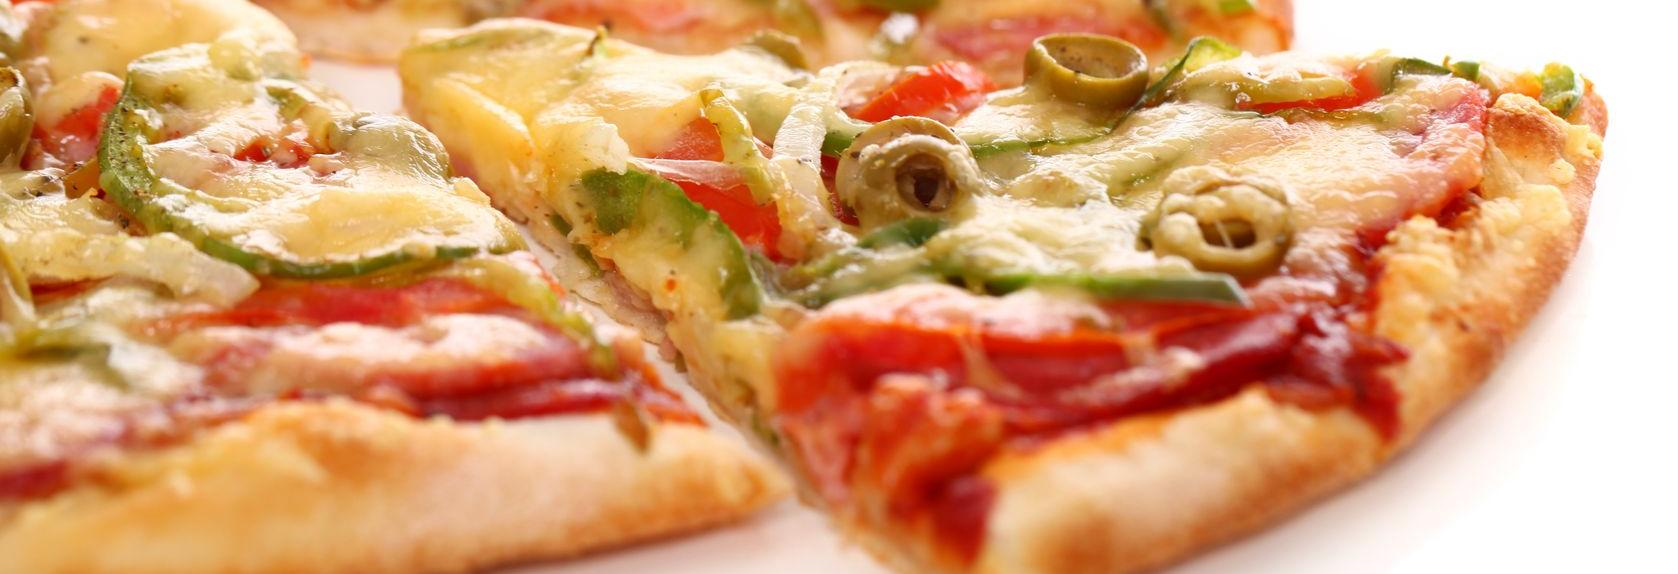 pizza, online, delivery, catering, pasta, calzone, fresh